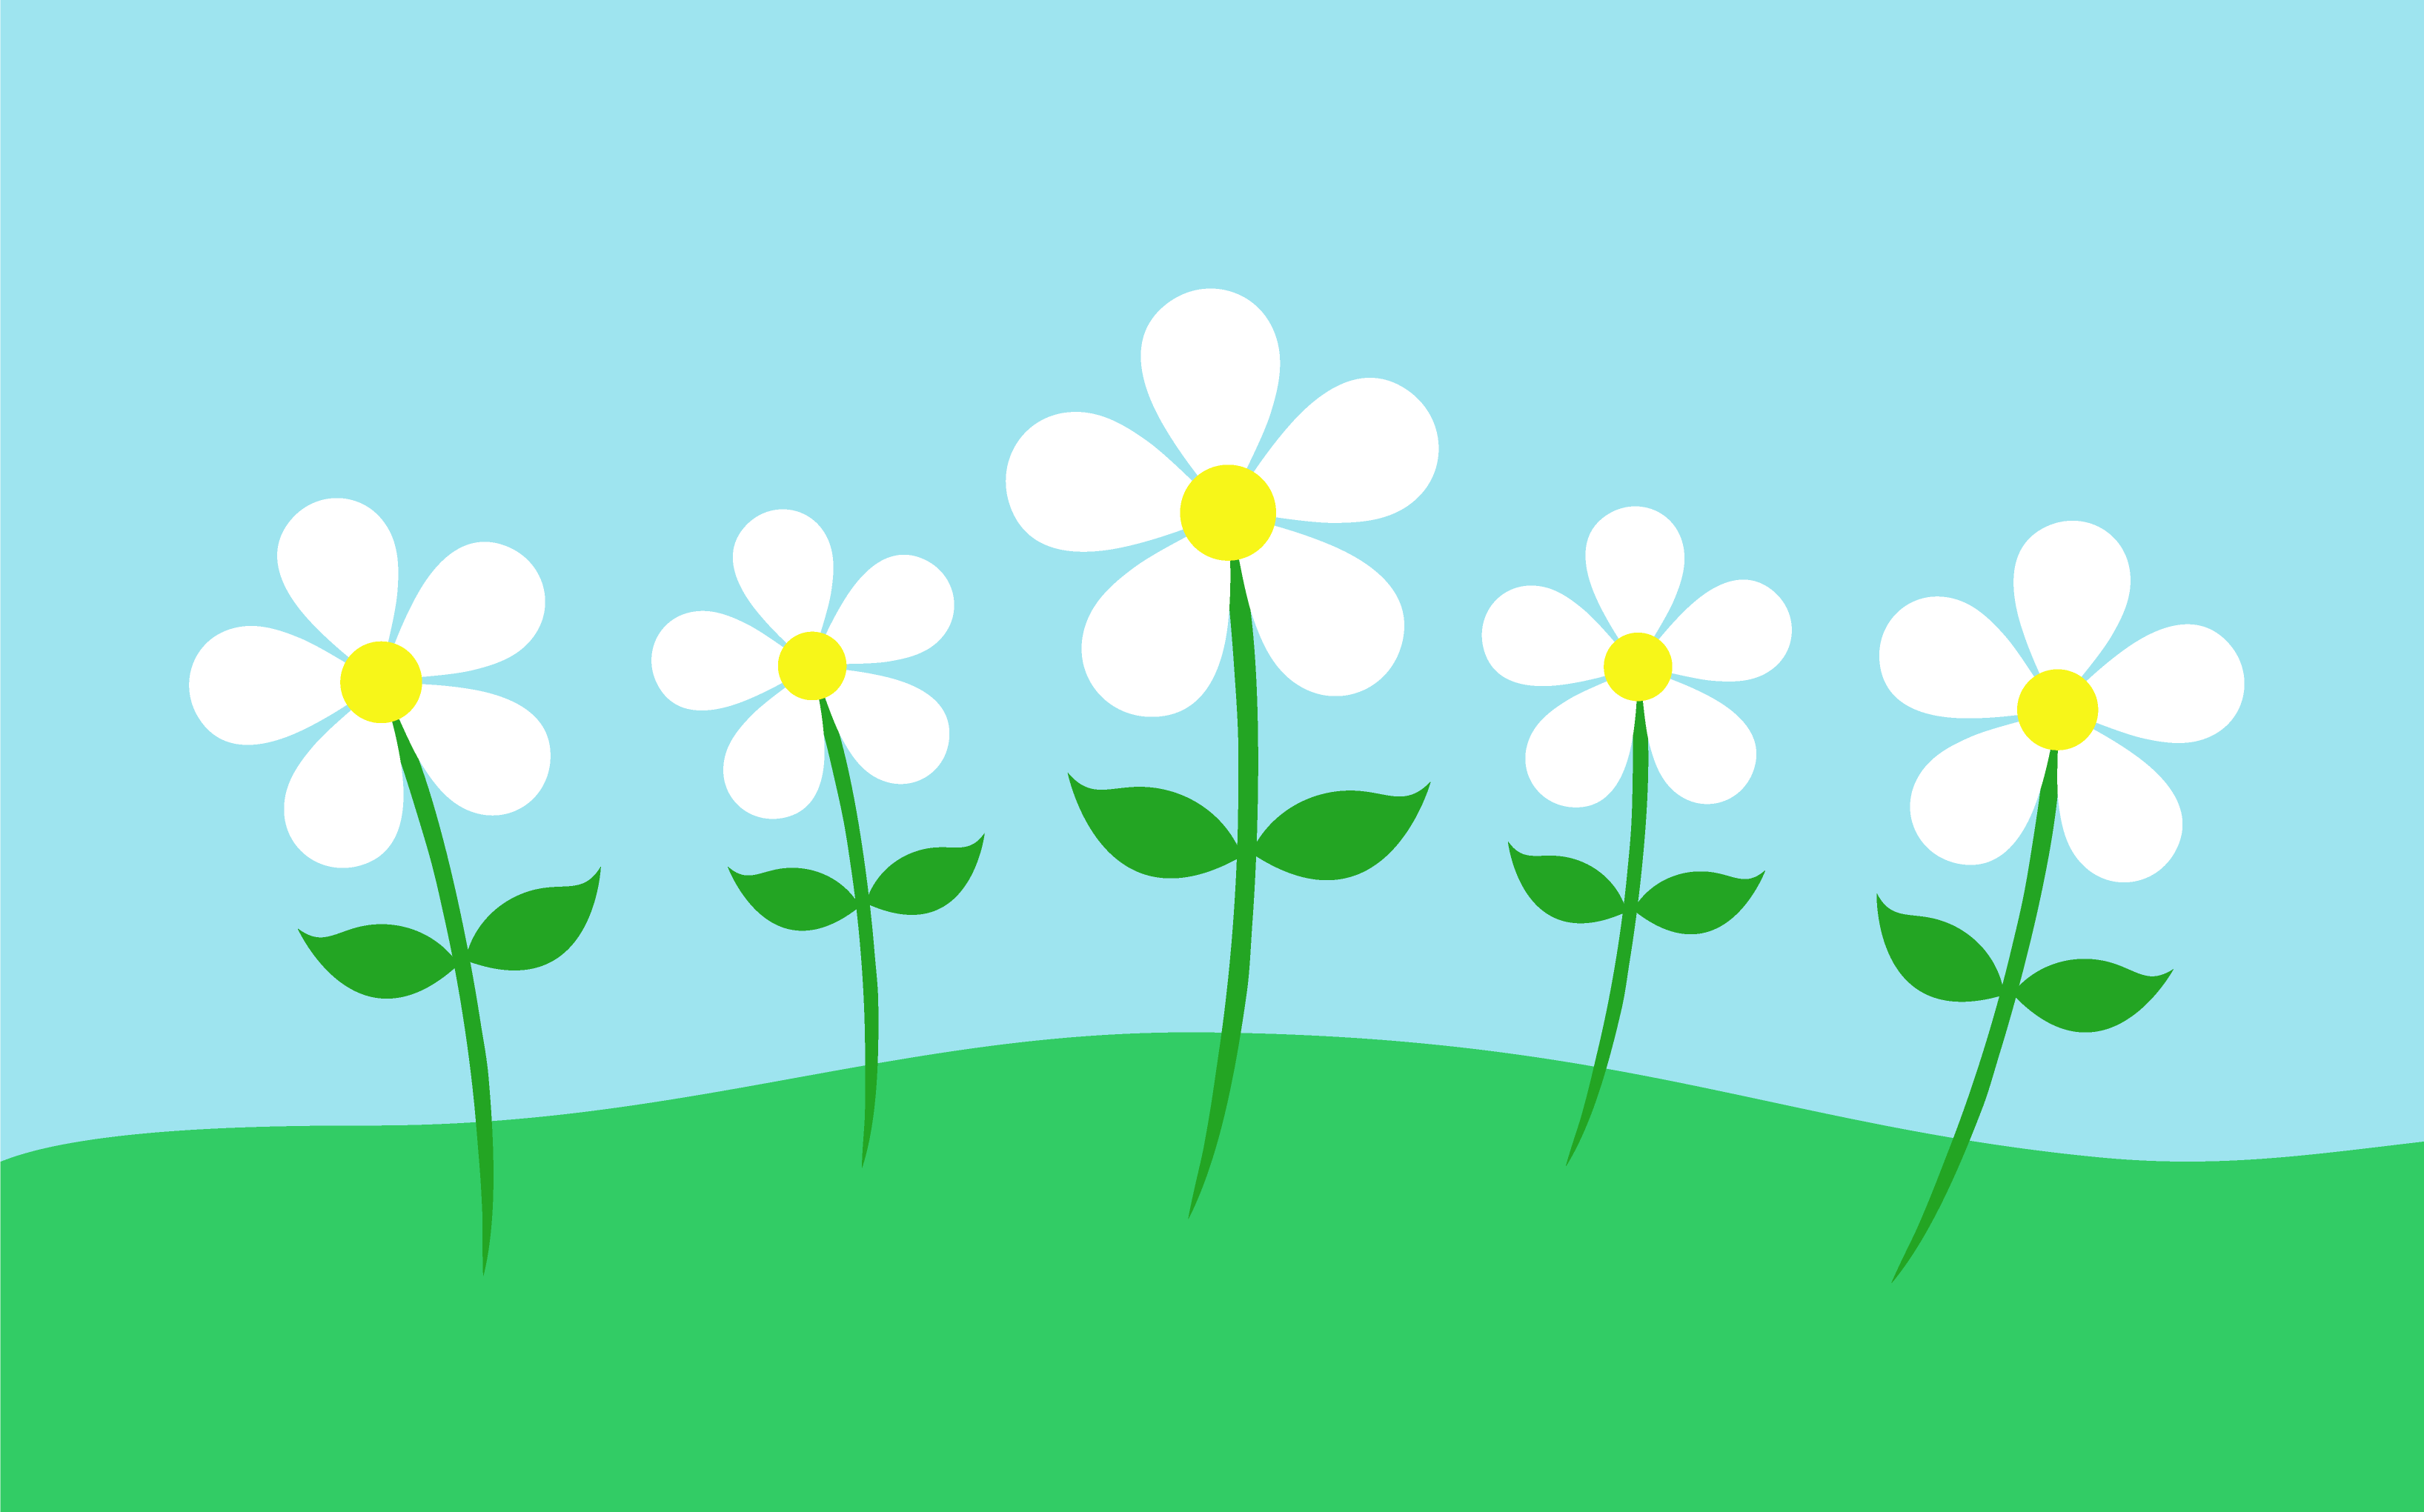 Nature clipart spring flower #11